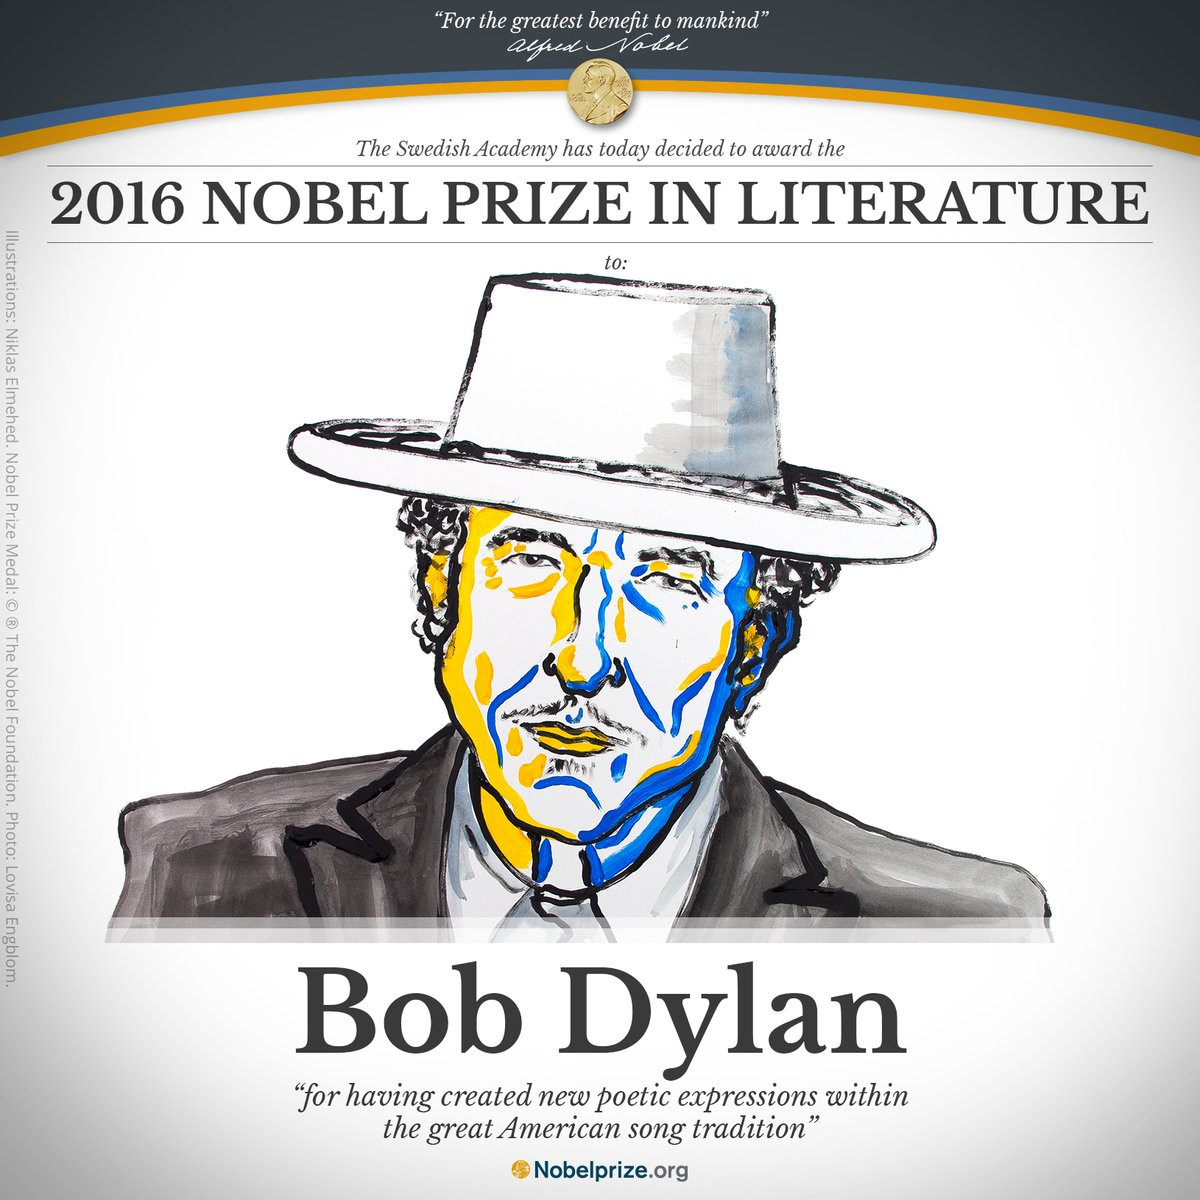 Bob Dylan has been awarded the 2016 Nobel Prize dor literature